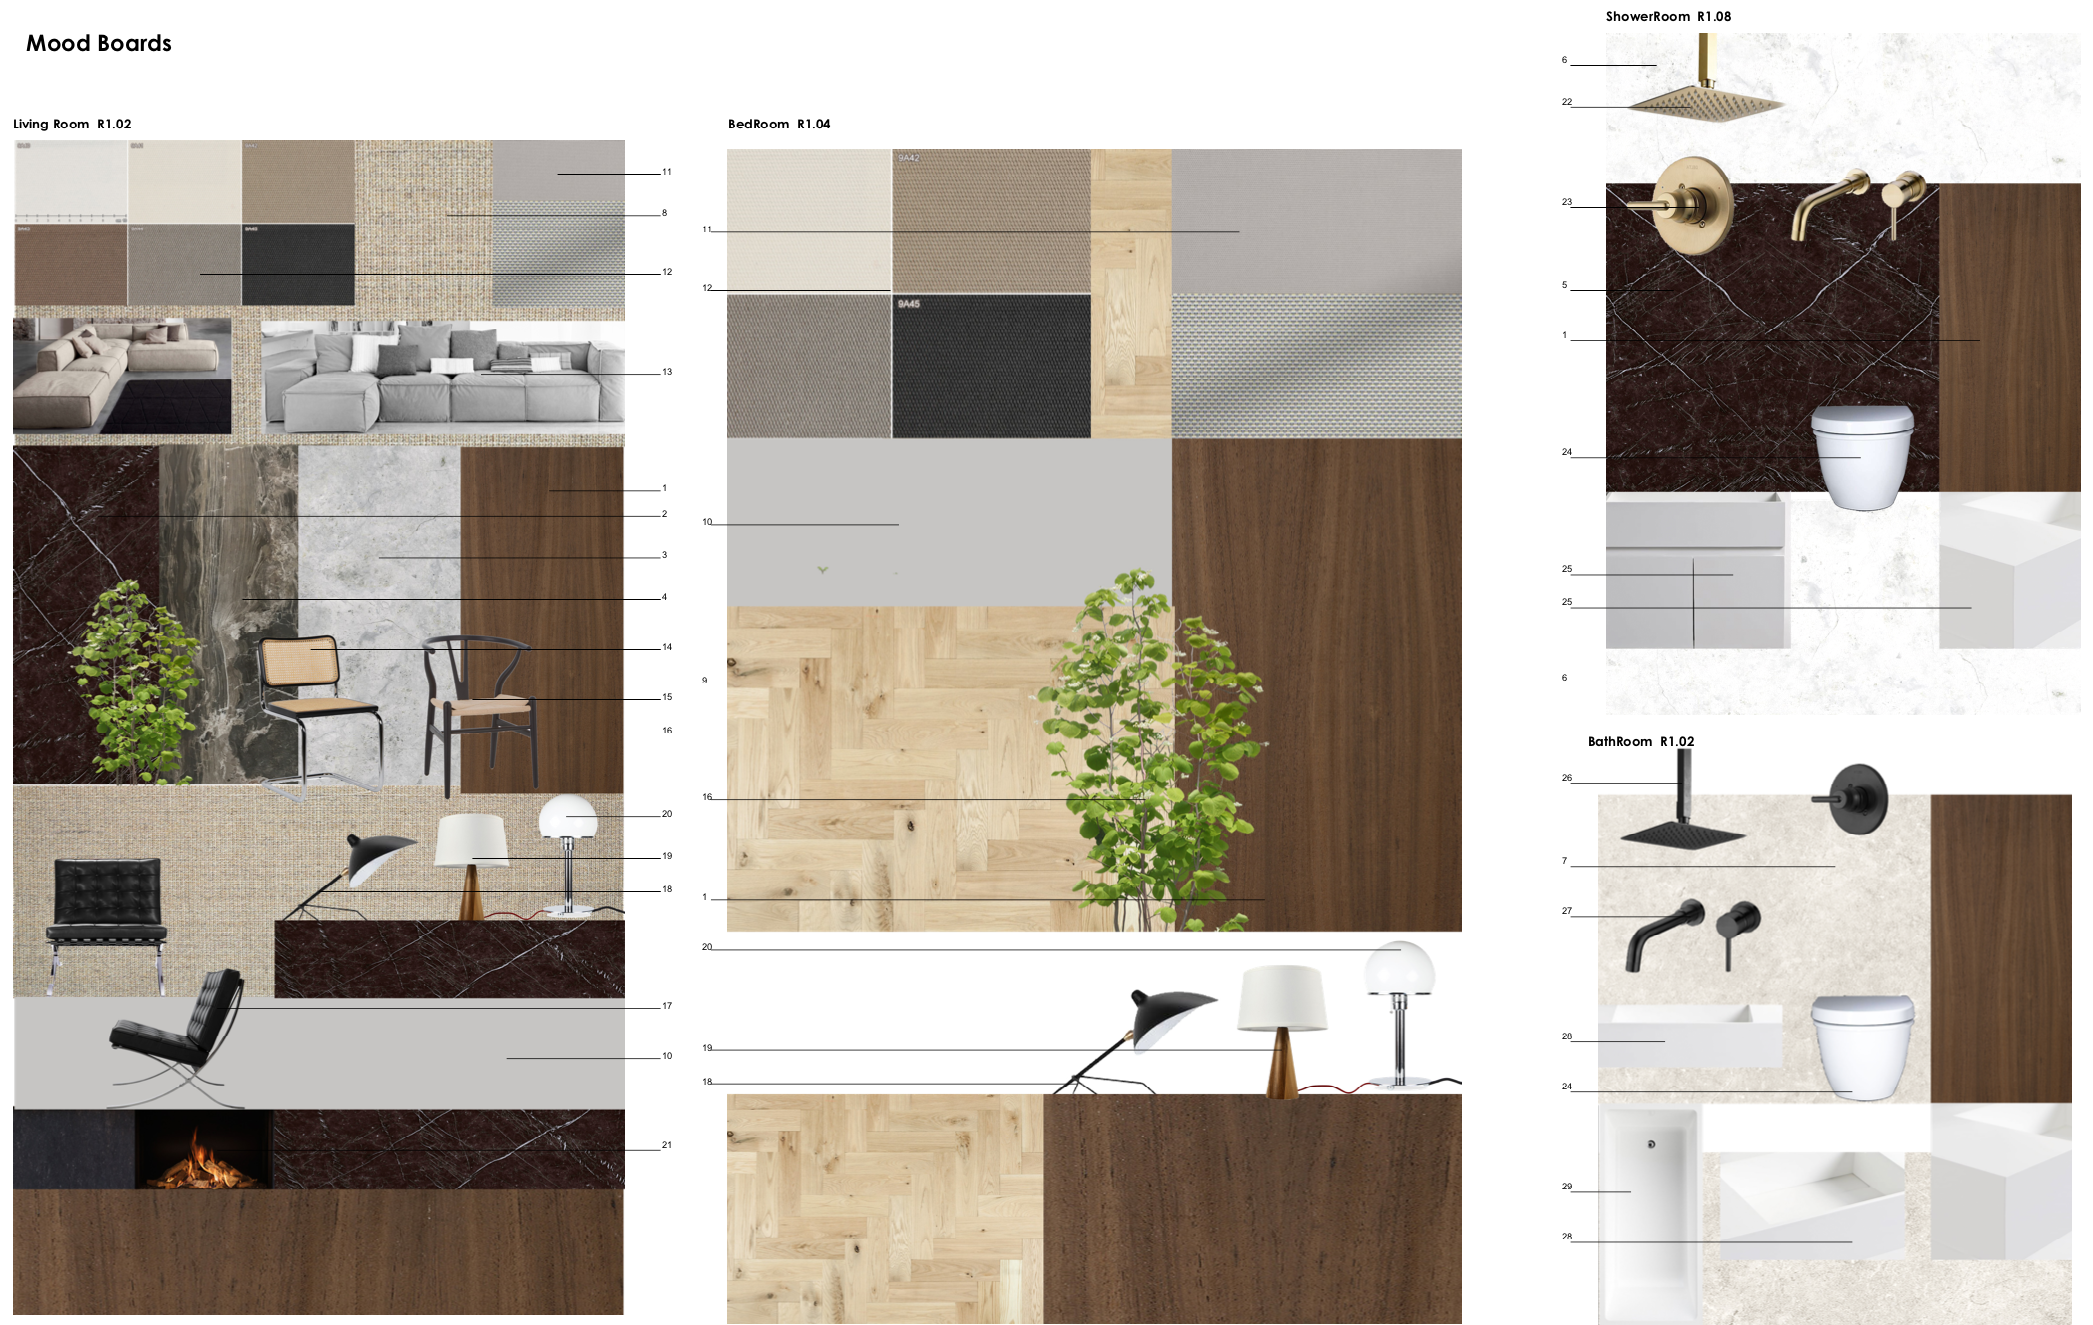 mood board examples for interior design